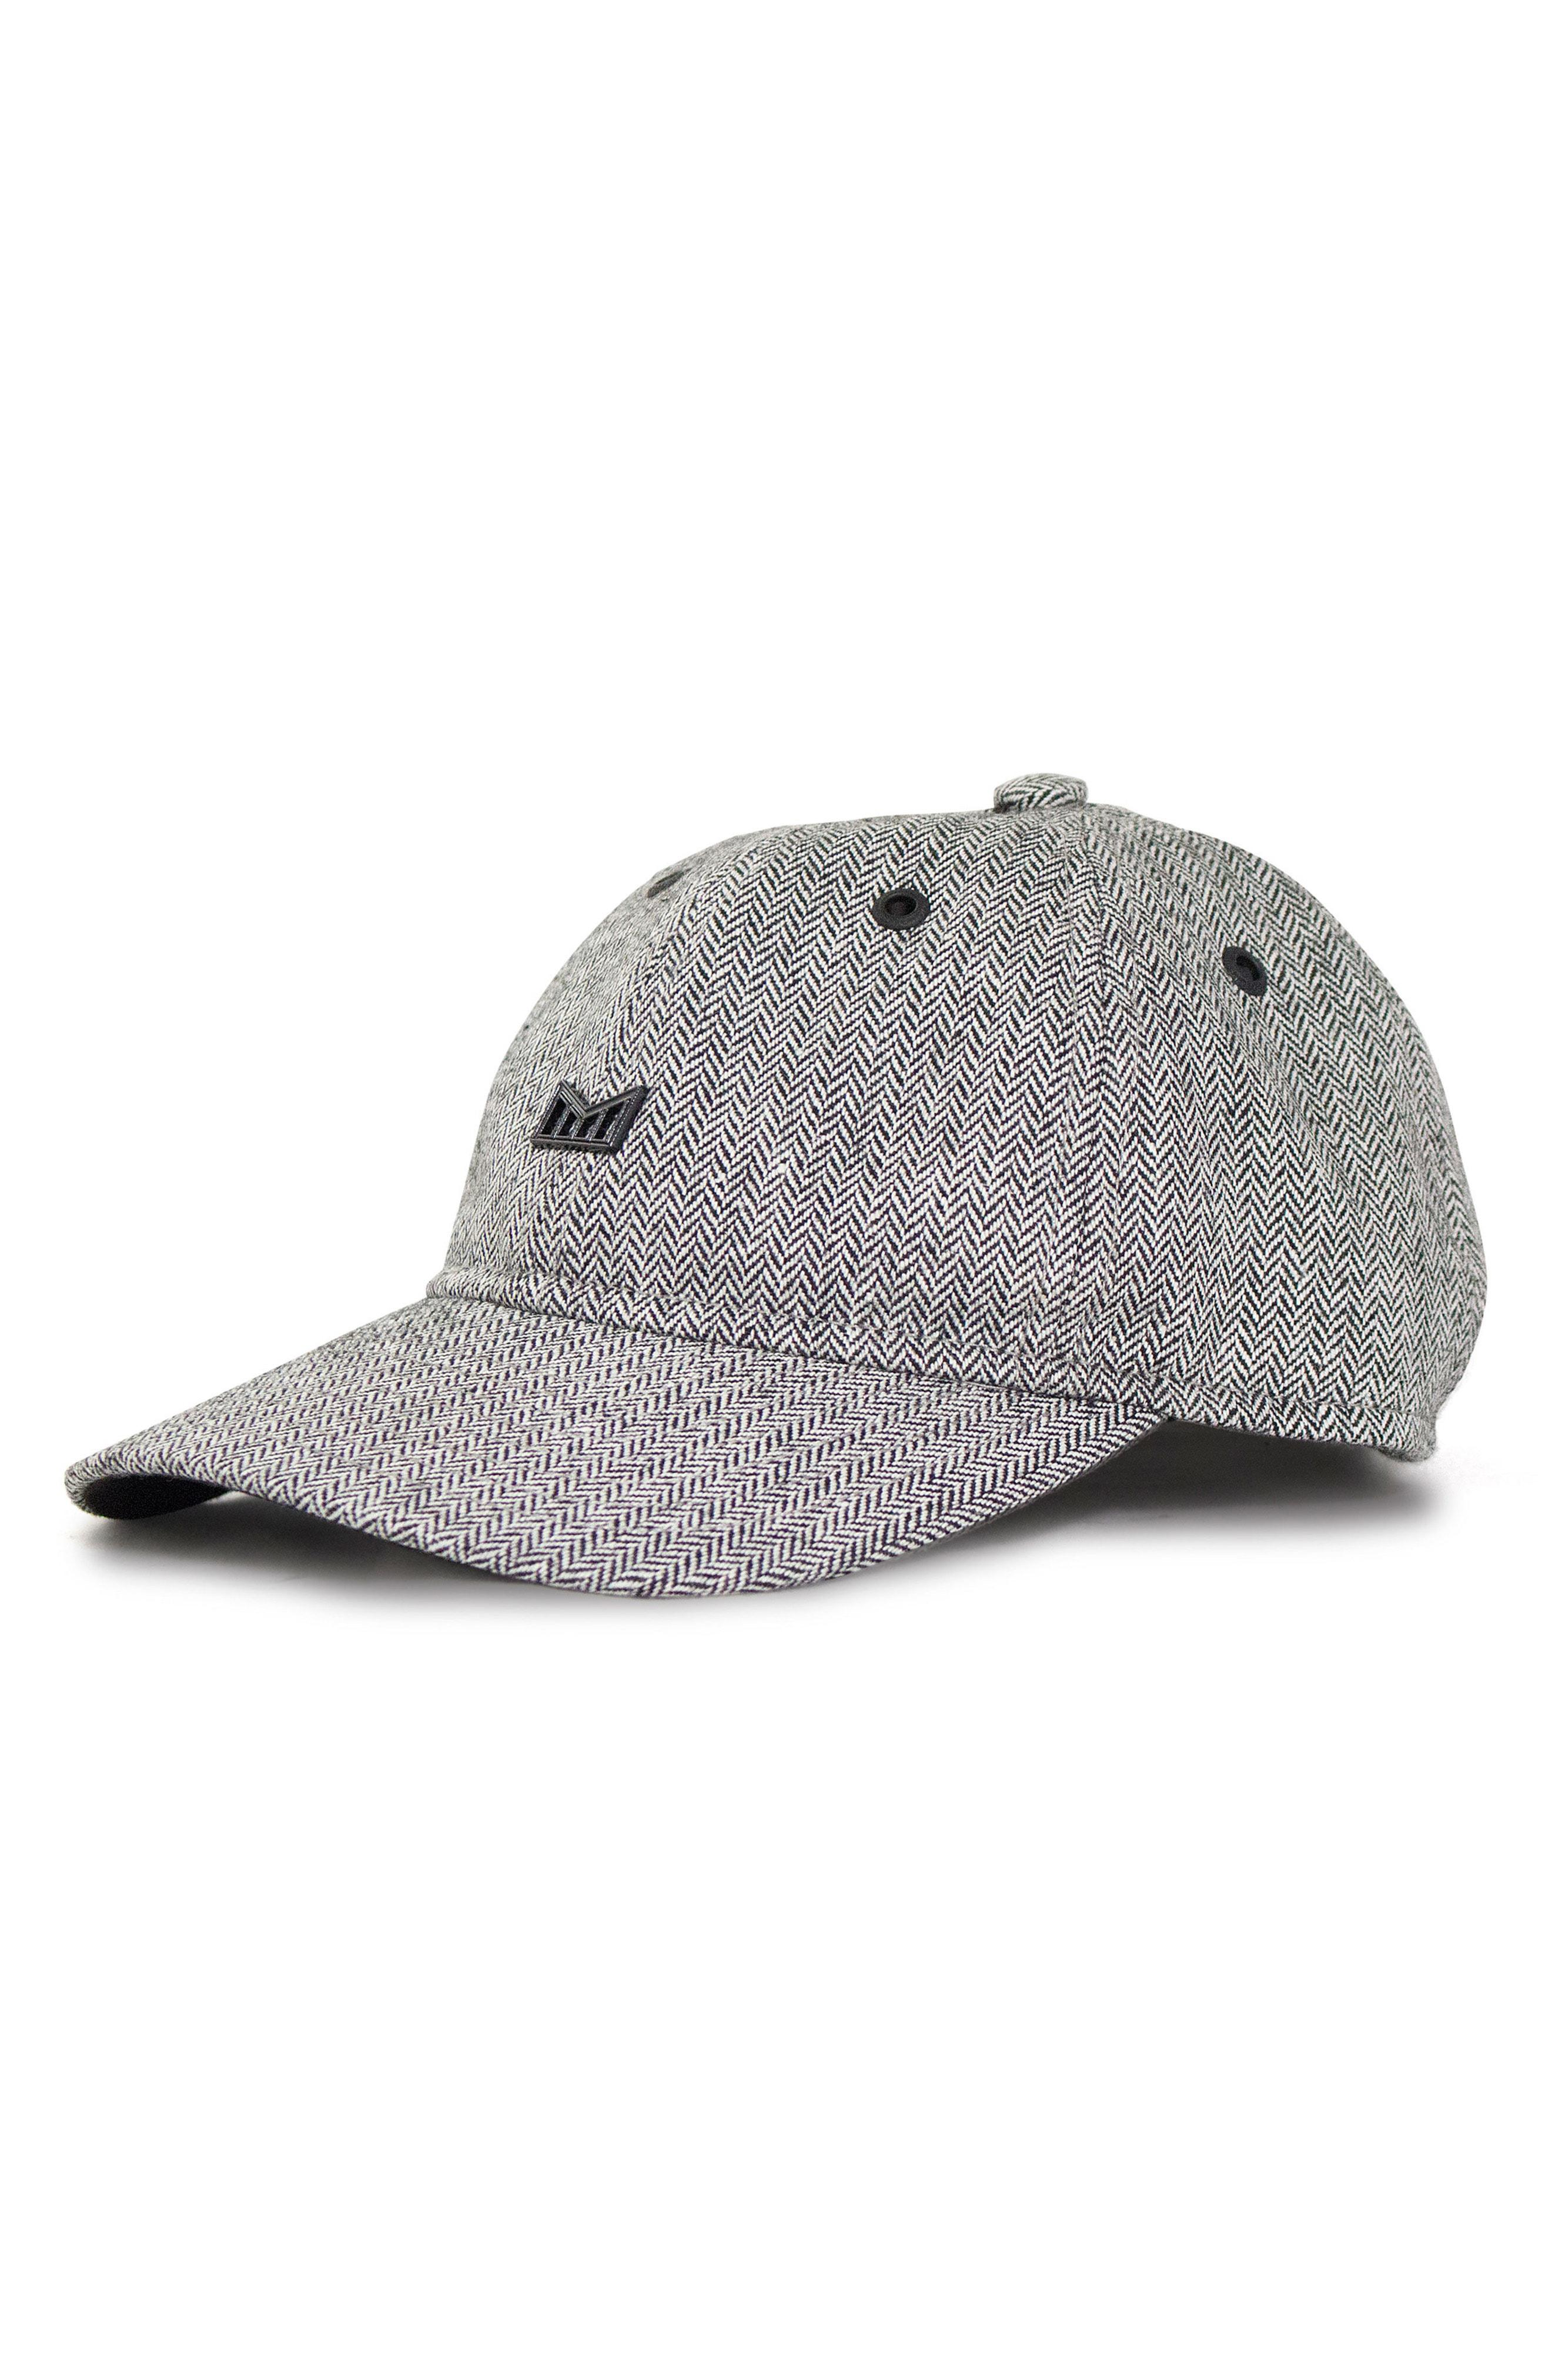 check out 9d5c3 2be8c ... germany melin. mens skunked baseball cap 7f6f7 eb4fc